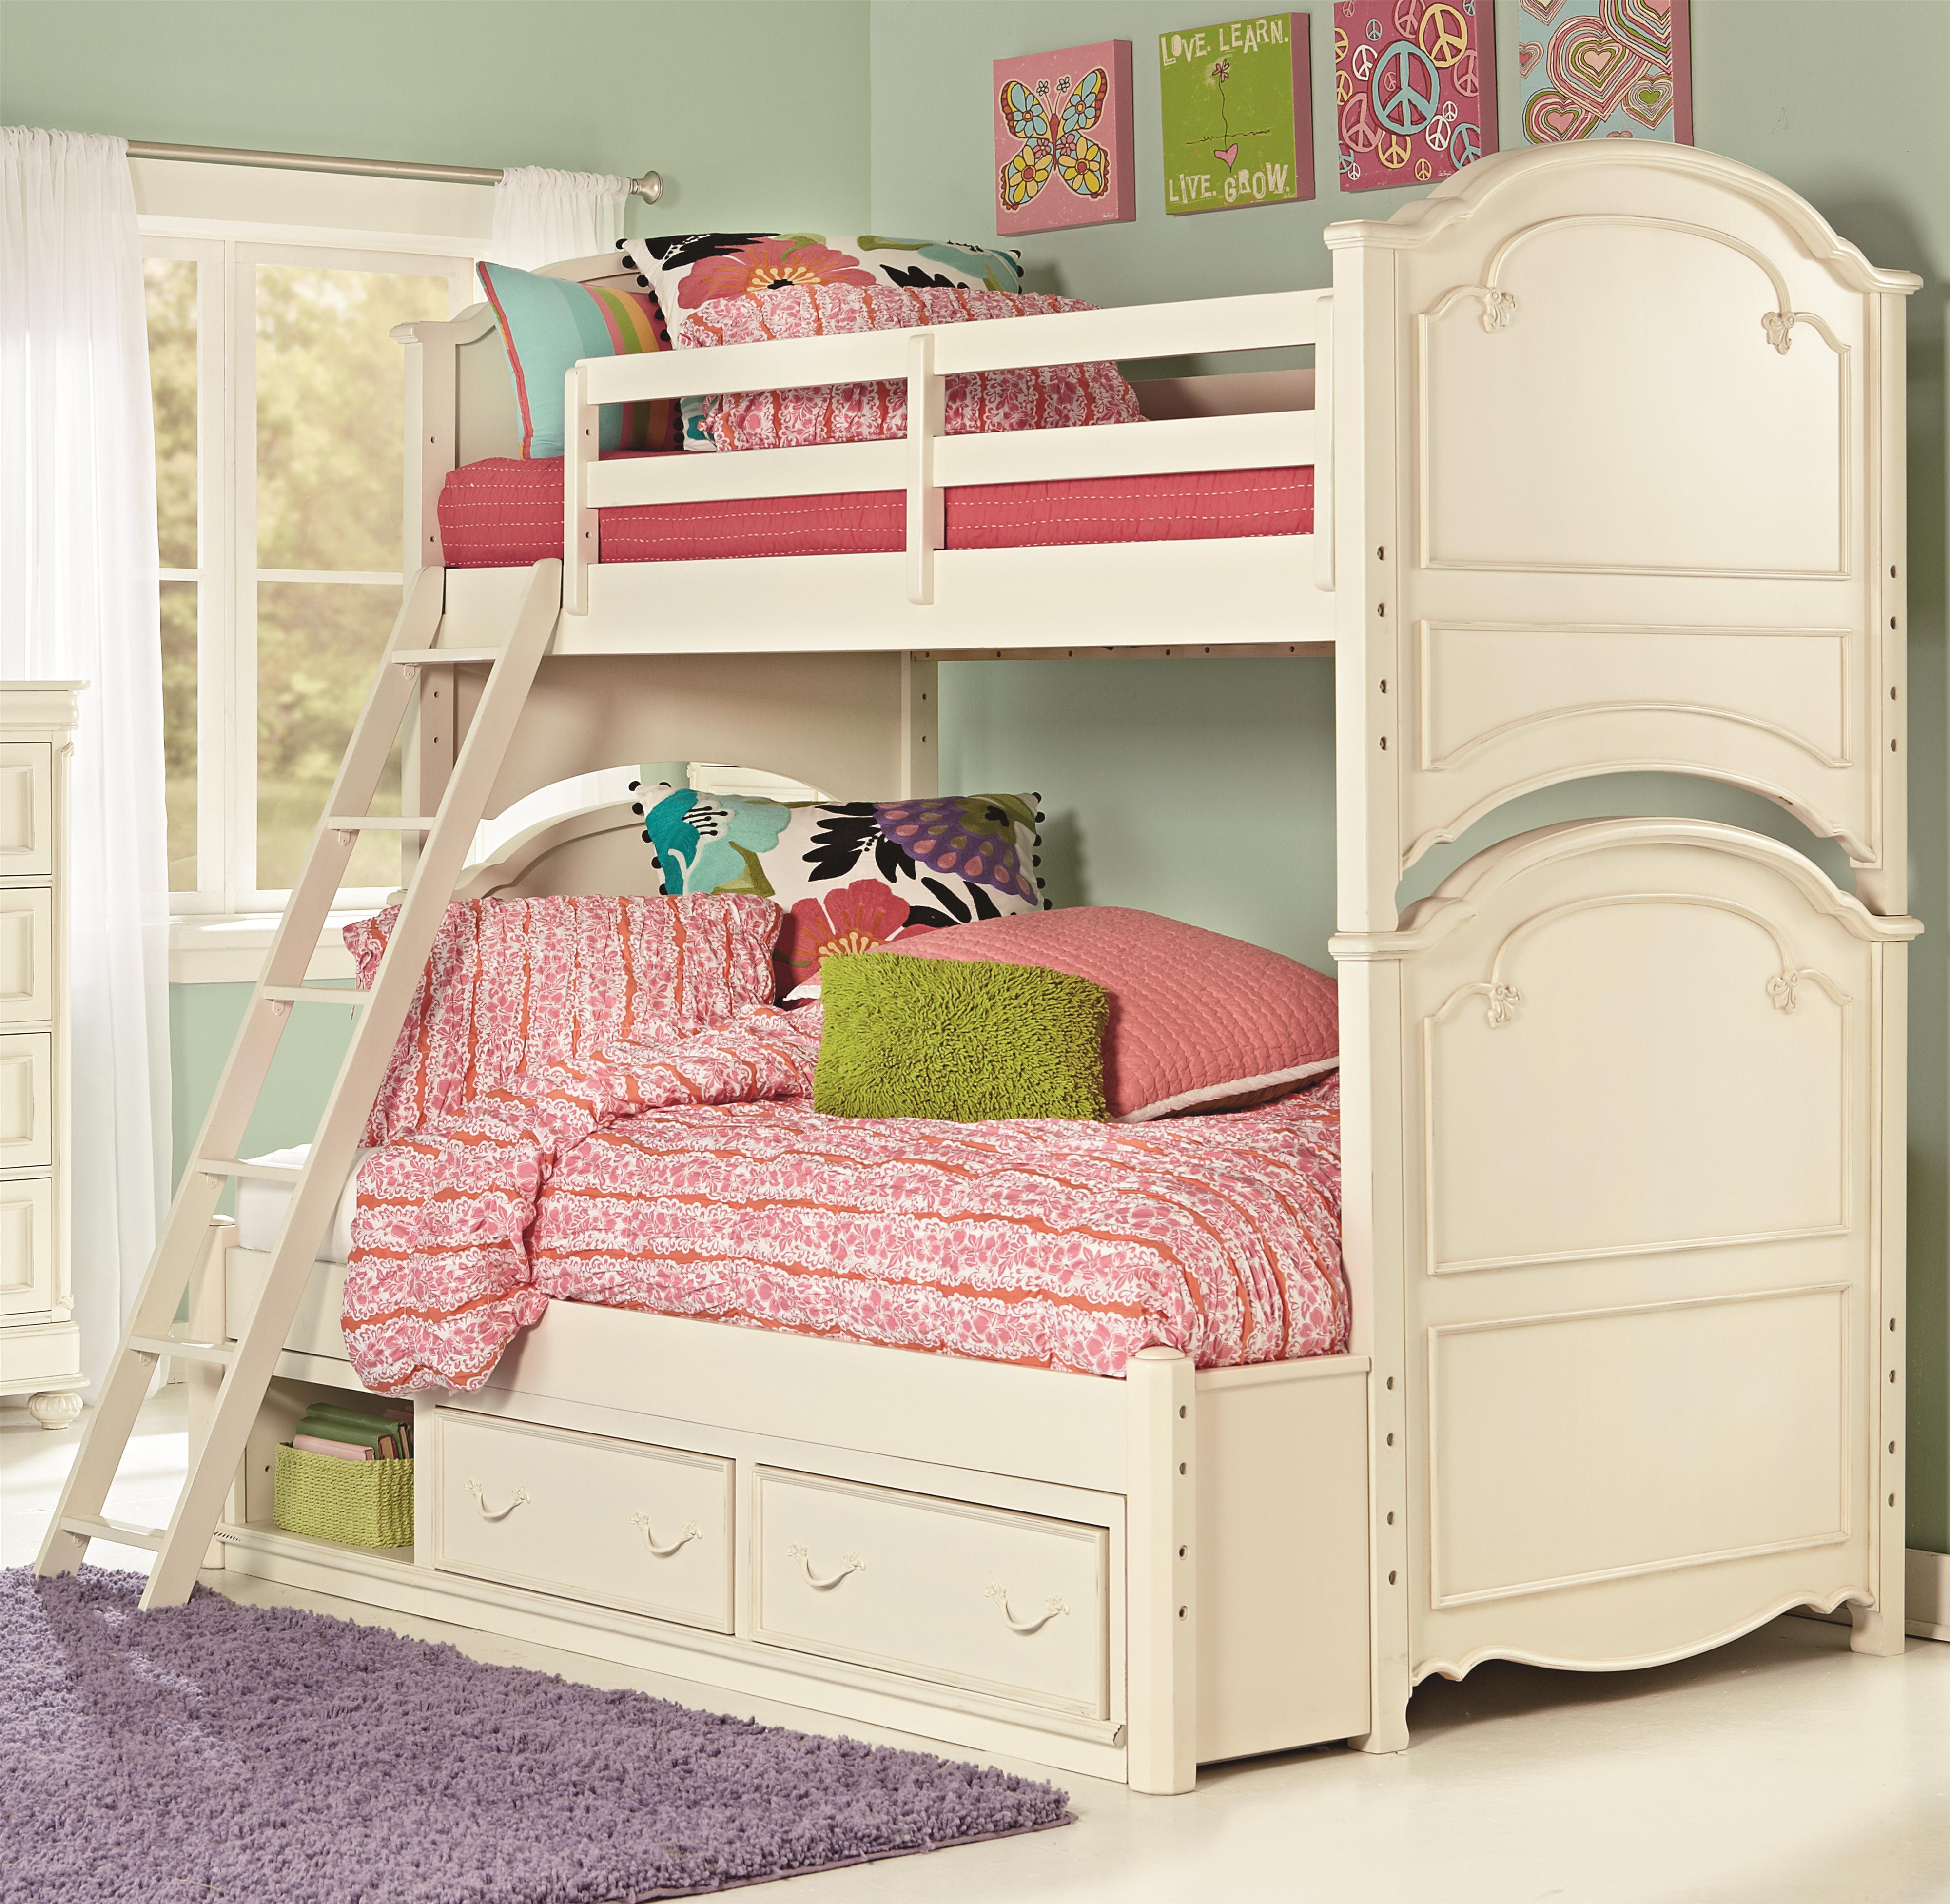 twin over full bunk bed with underbed storage unit by legacy classic kids wolf and gardiner. Black Bedroom Furniture Sets. Home Design Ideas